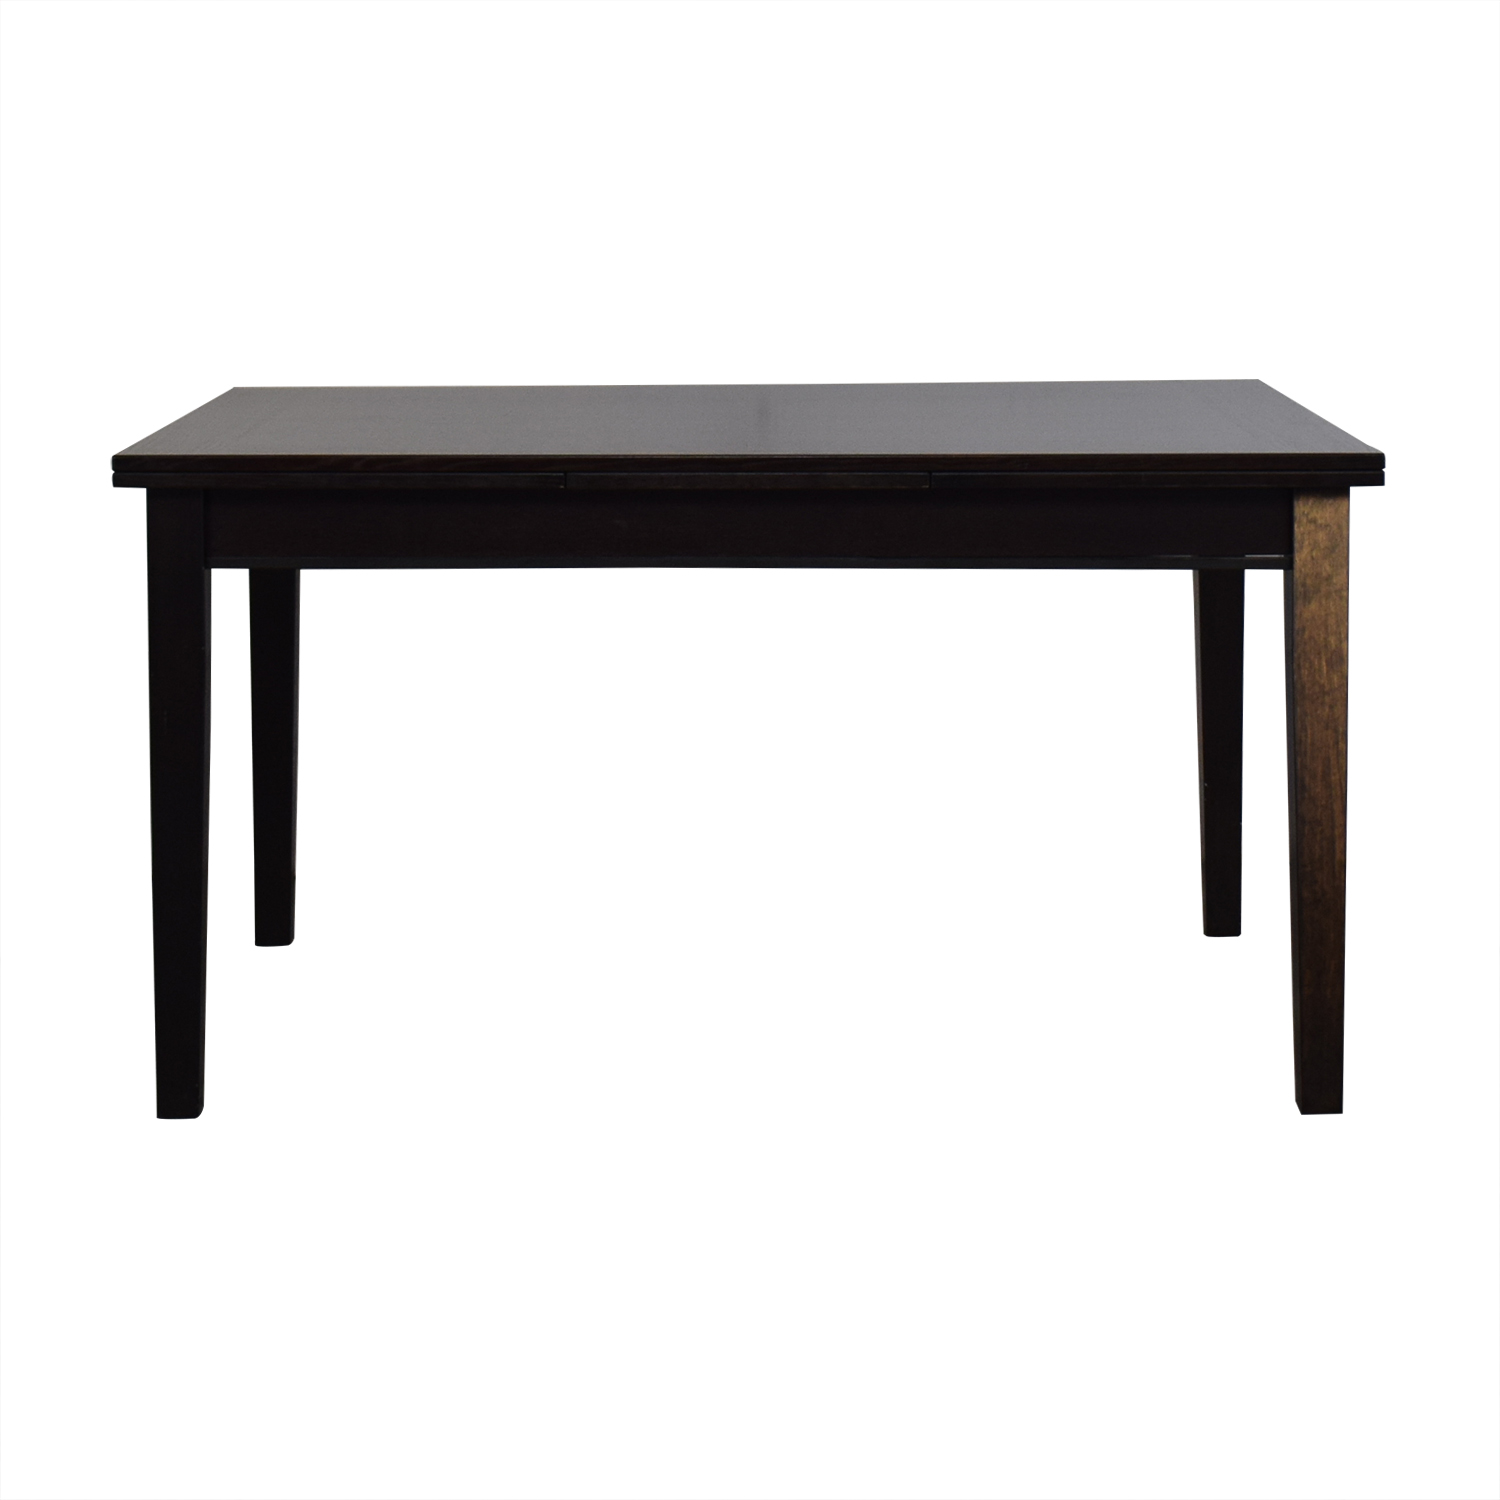 buy Crate & Barrel Pratico Bruno Extension Square Dining Table Crate & Barrel Tables